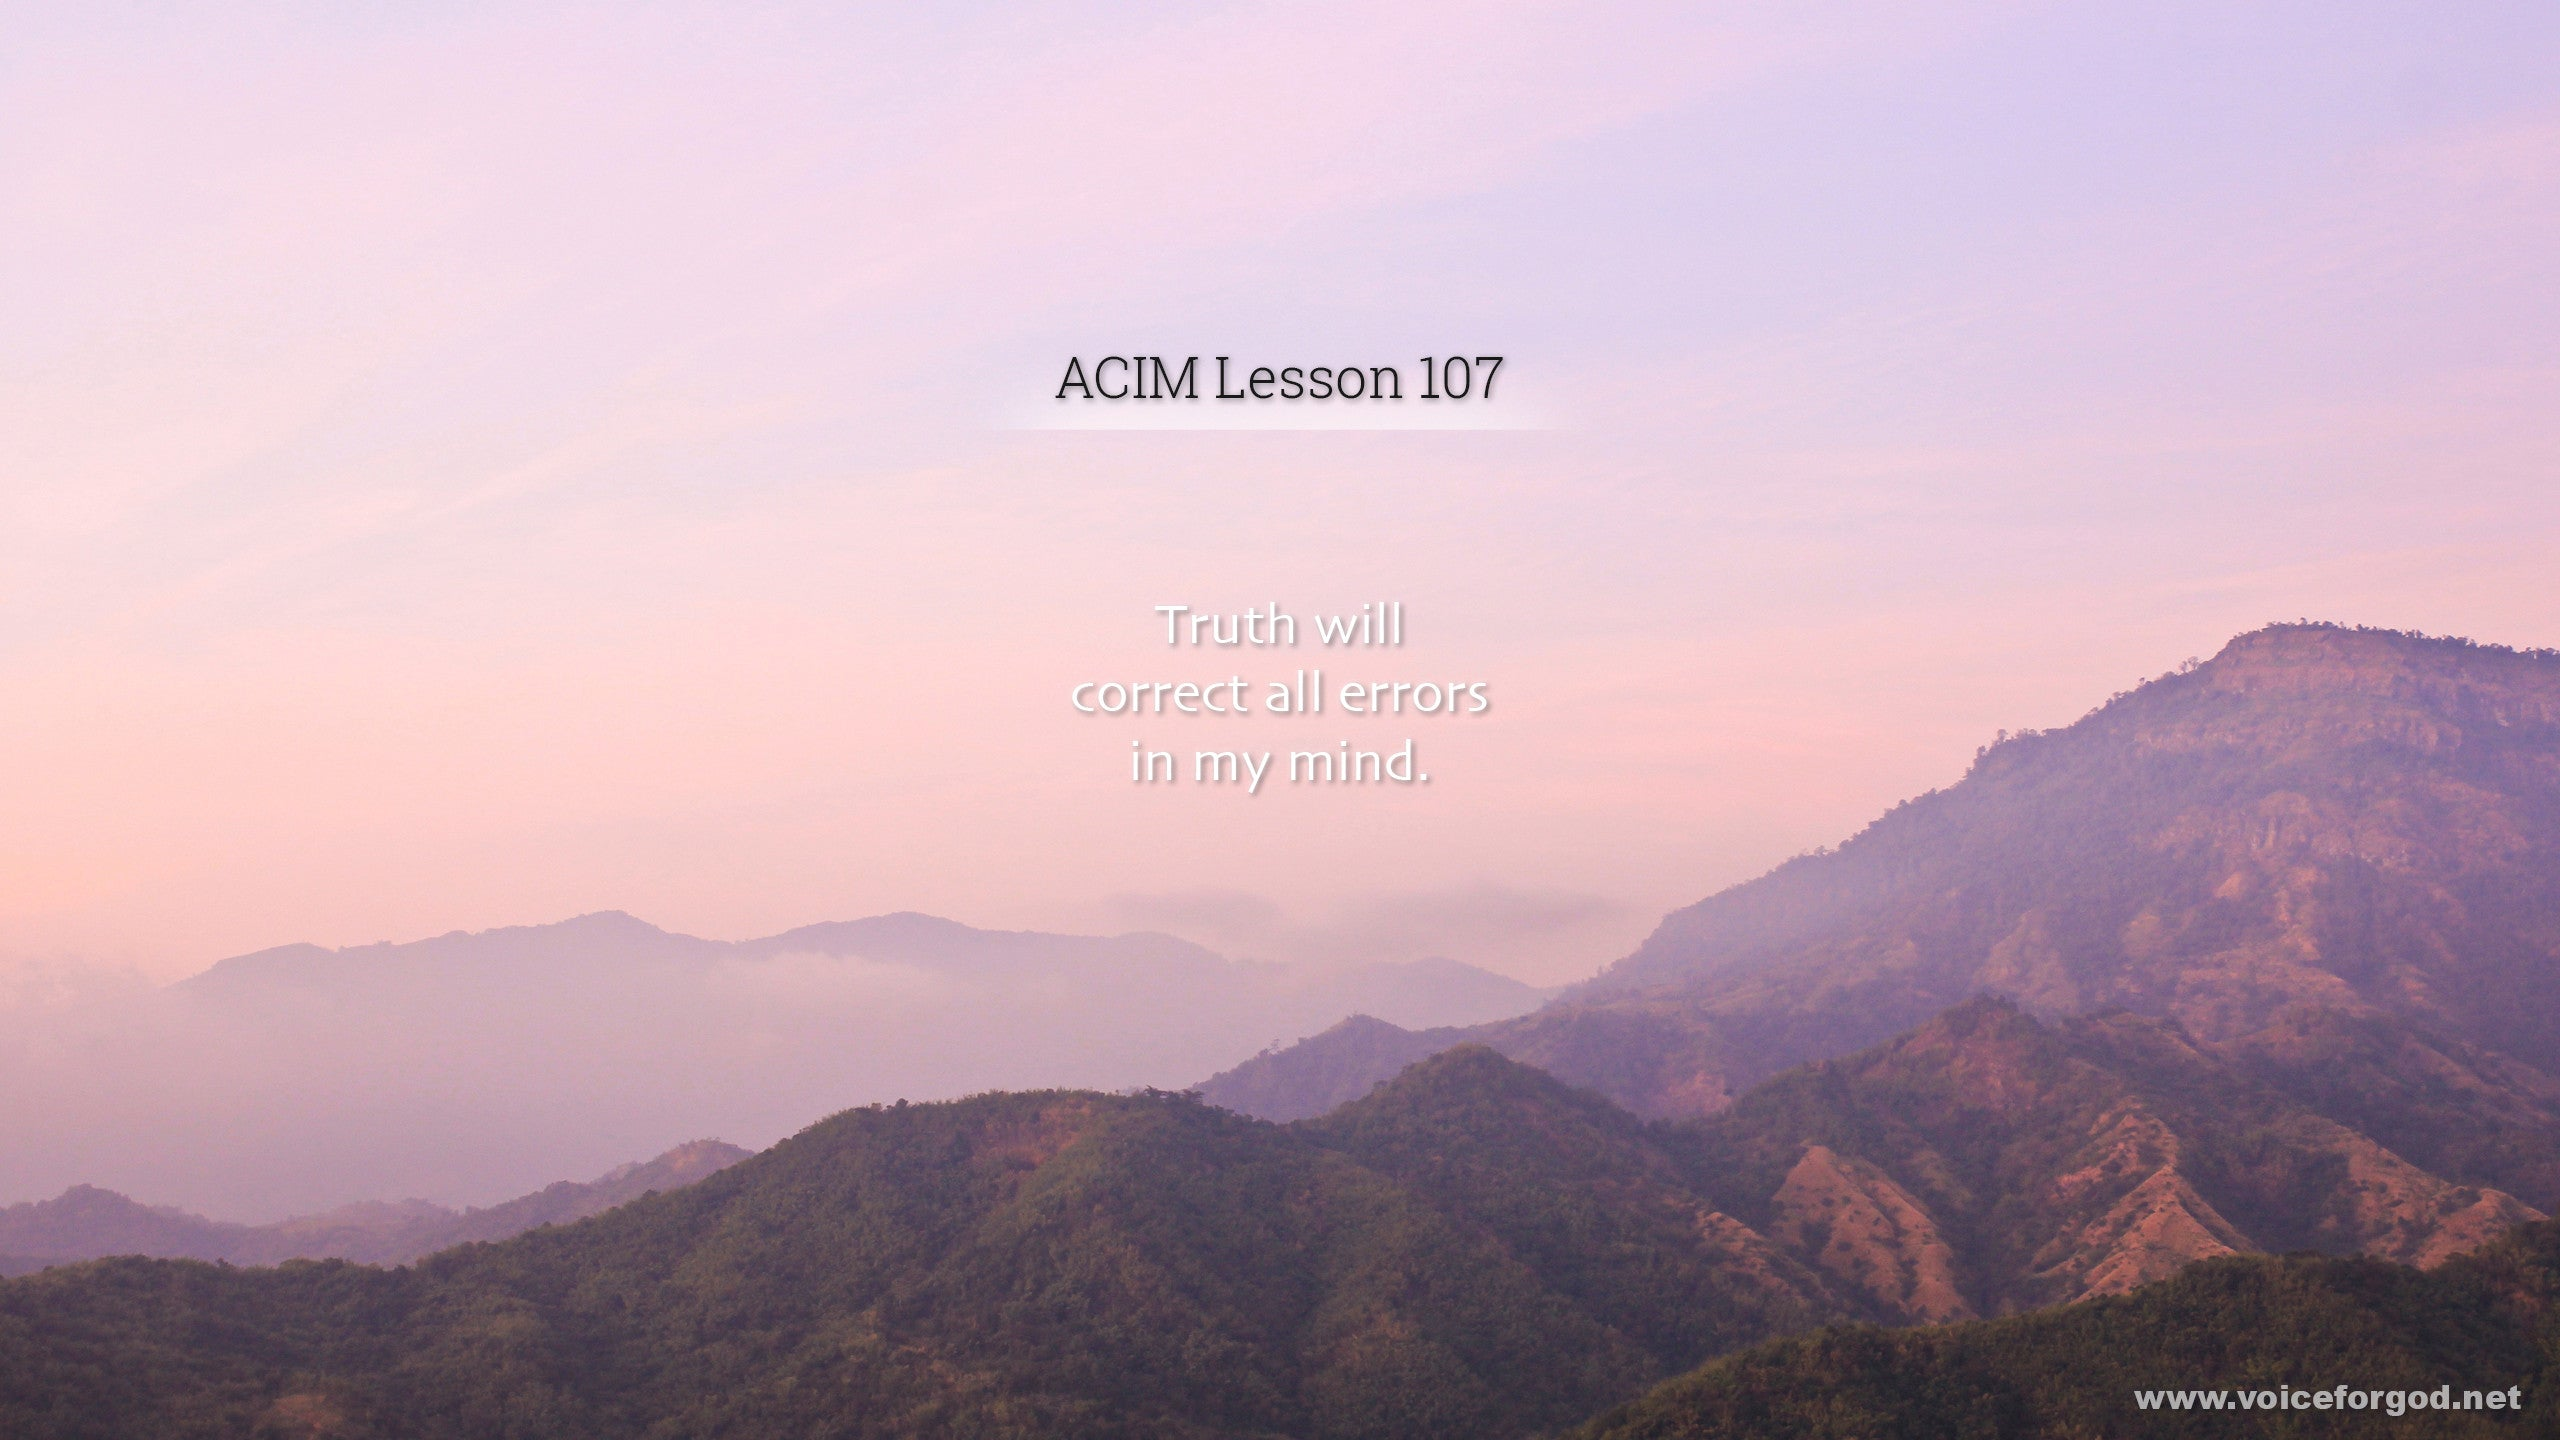 ACIM Lesson 107 - A Course in Miracles Workbook Lesson 107